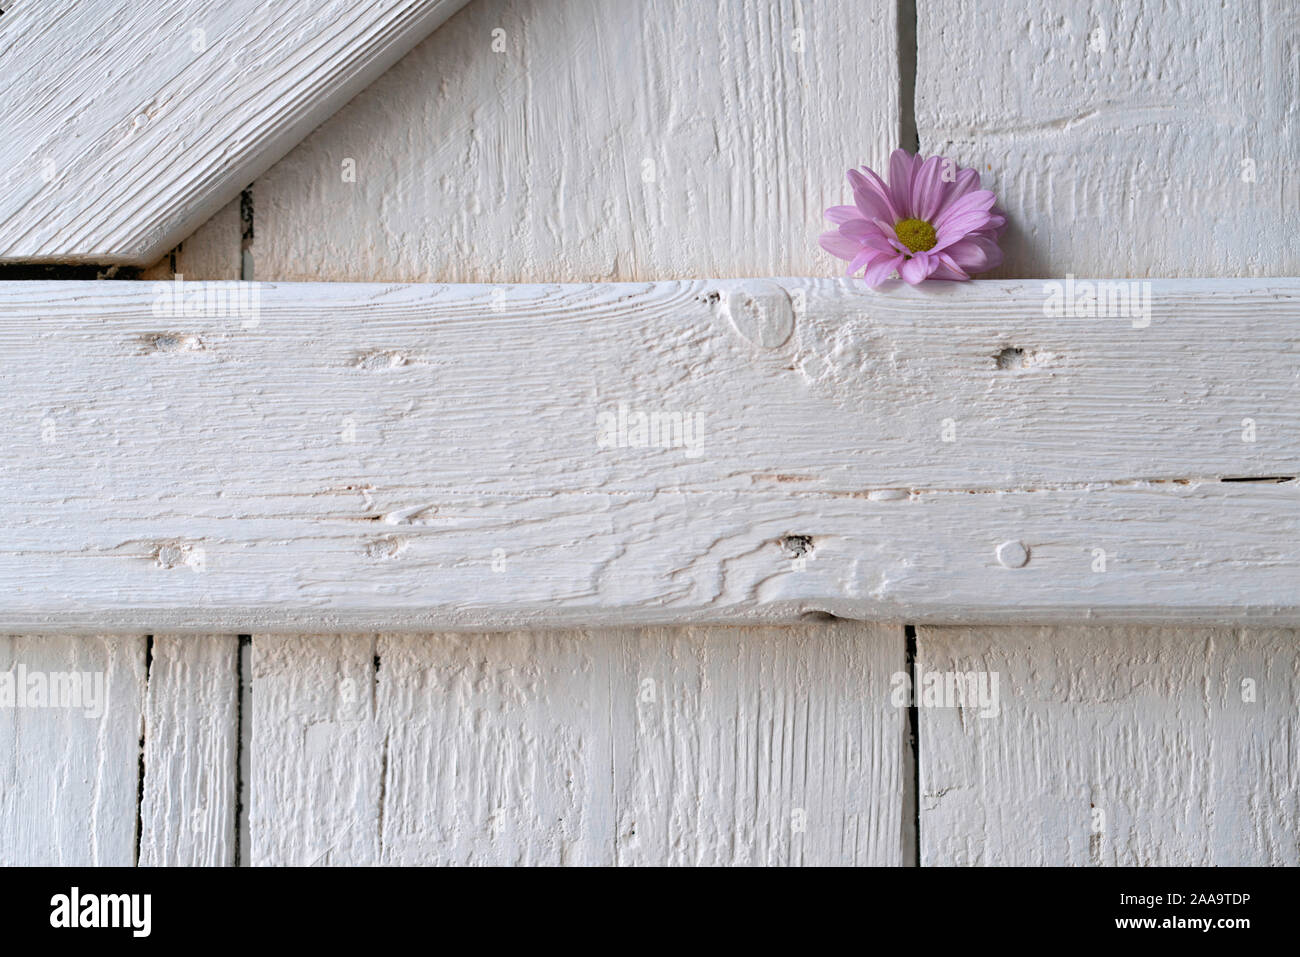 Single Pink Aster On A White Wooden Shutter Indoors Stock